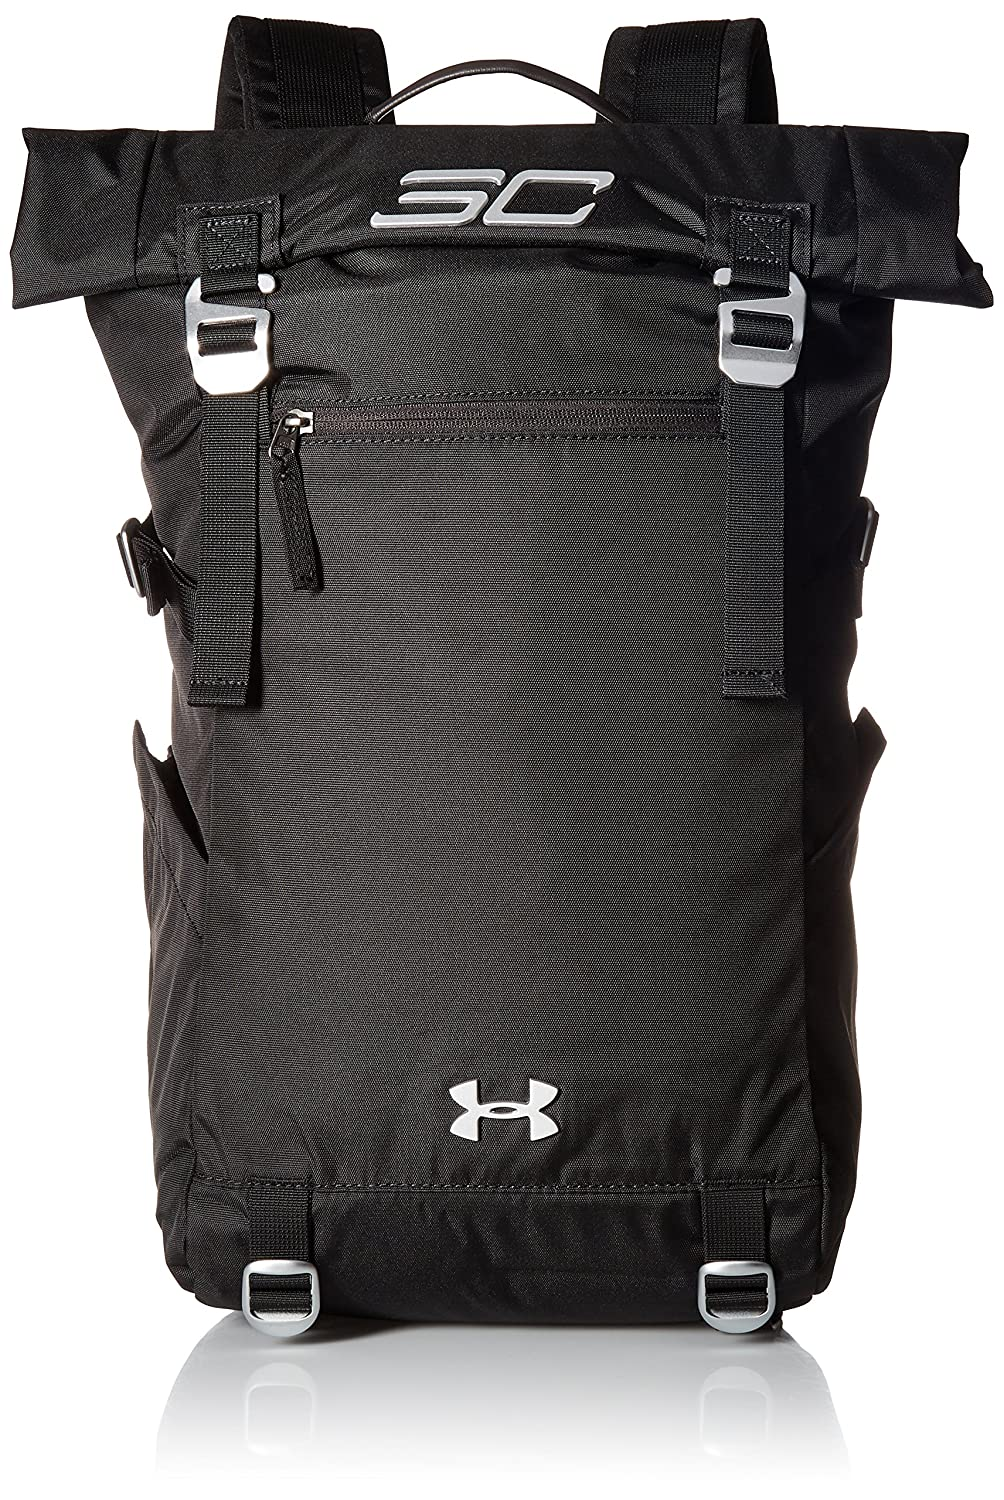 1031d832e469 Amazon.com  Under Armour SC30 Signature Rolltop Backpack